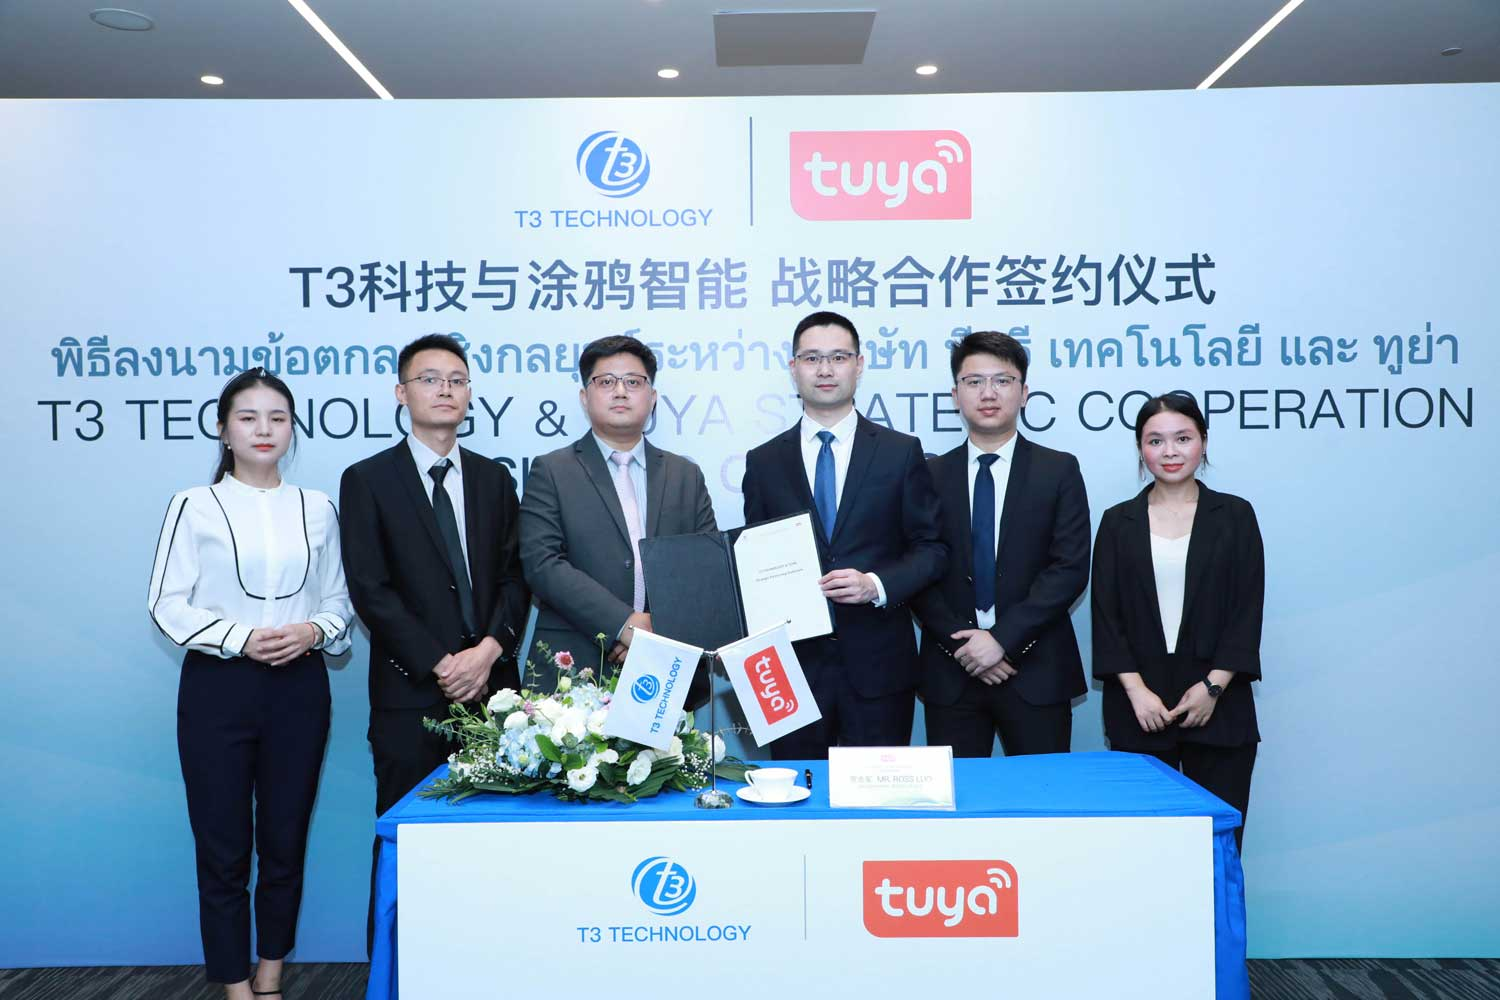 T3 Technology and TUYA partnership to create the blueprint for SE Asia's IoT ecosystem